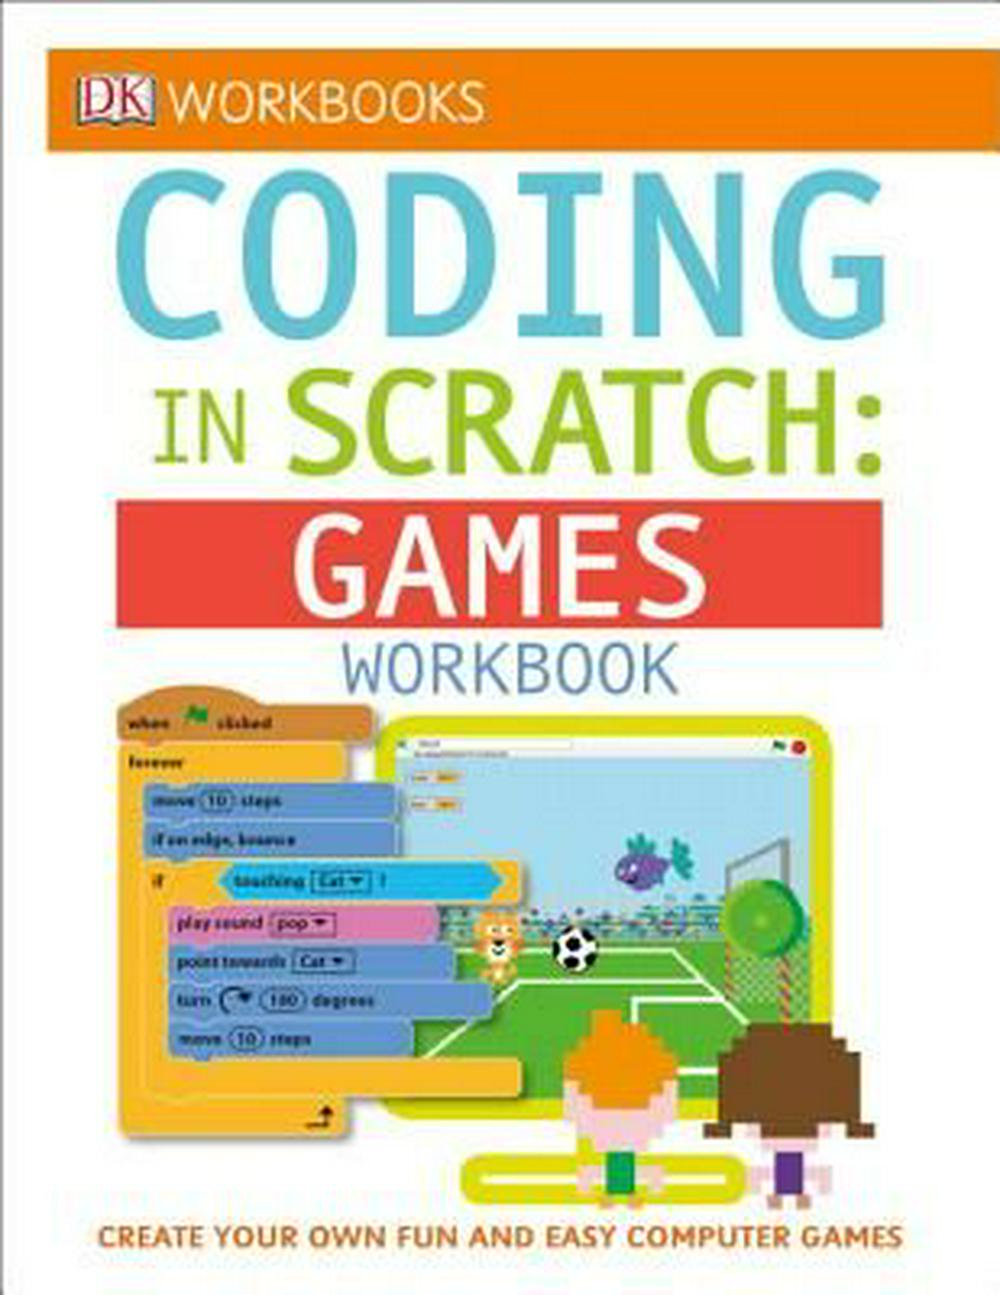 DK Workbooks - Coding in Scratch: Games Workbook